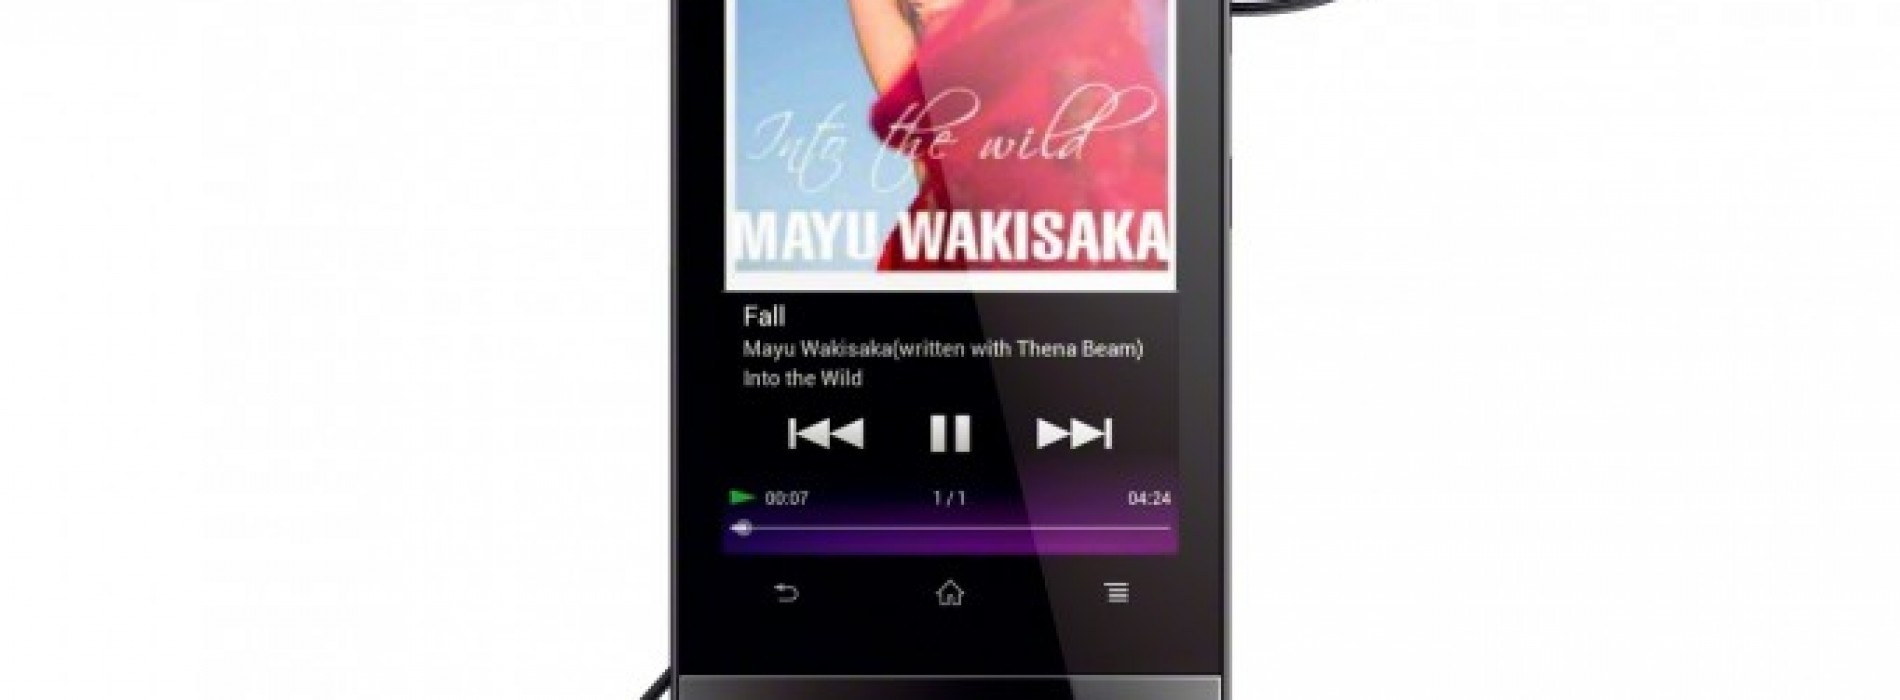 Sony announces new Walkman running Android